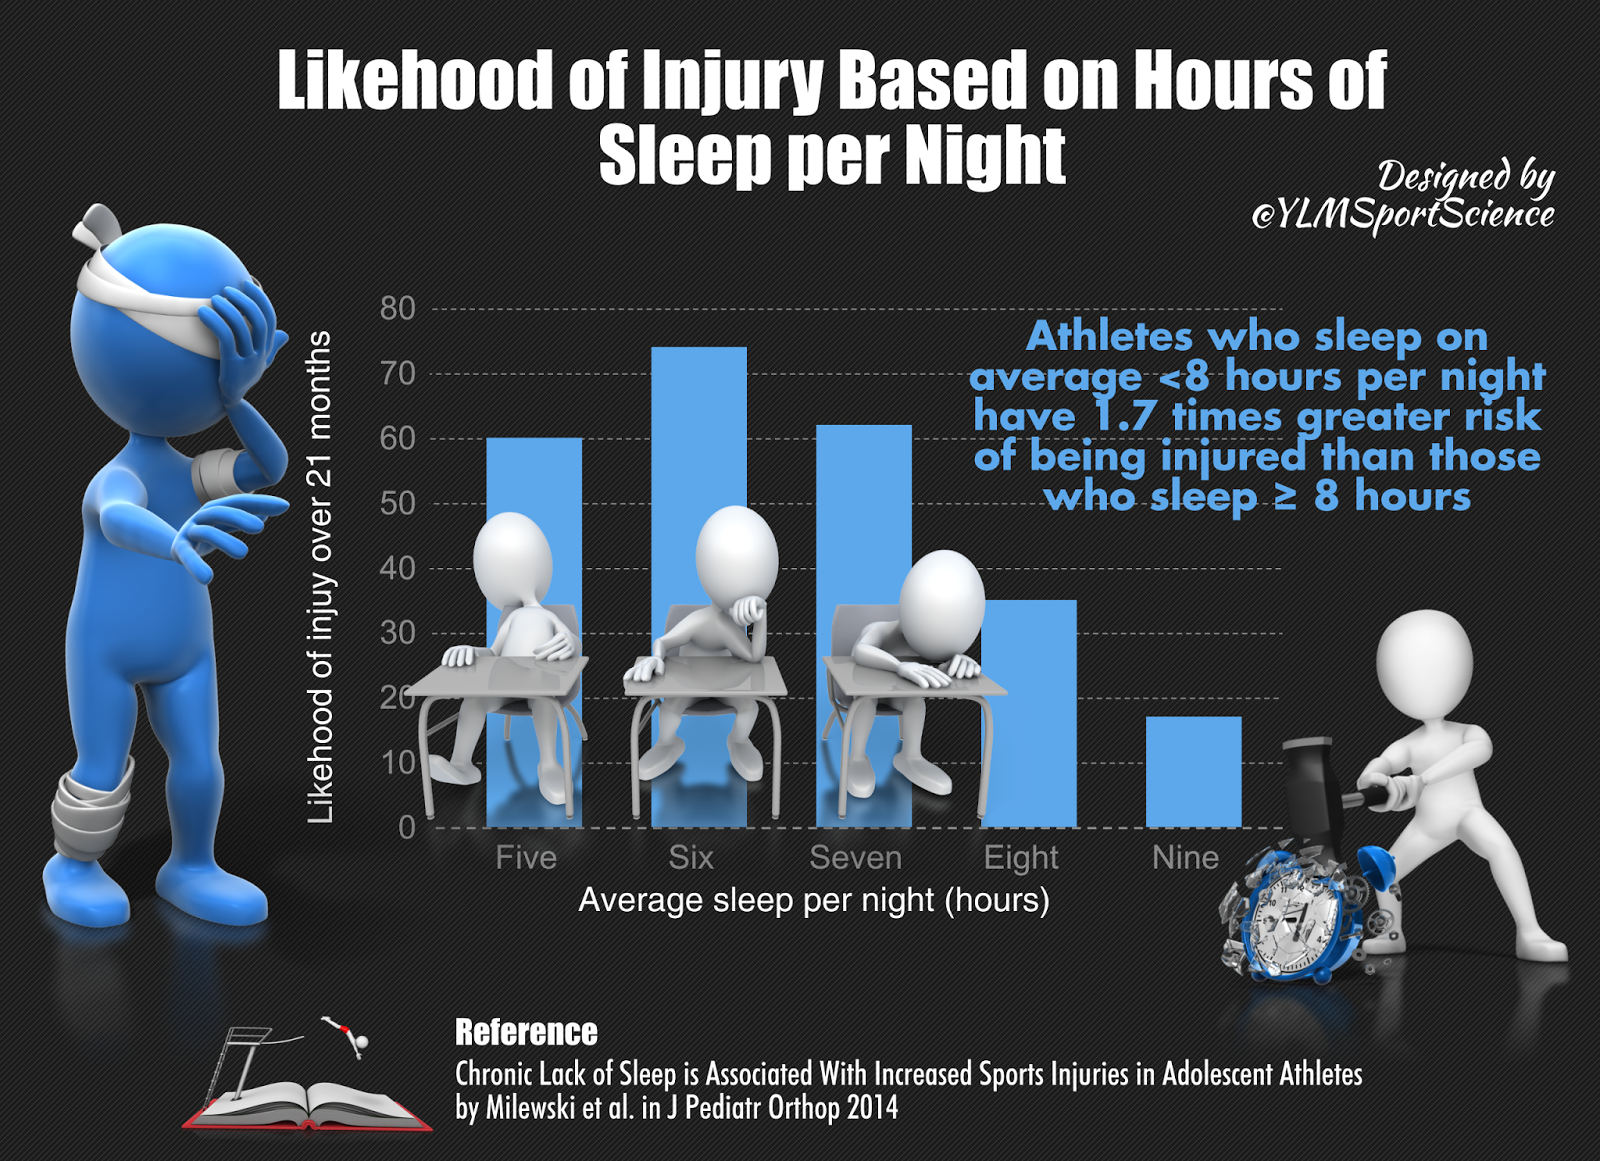 Sleep and injury